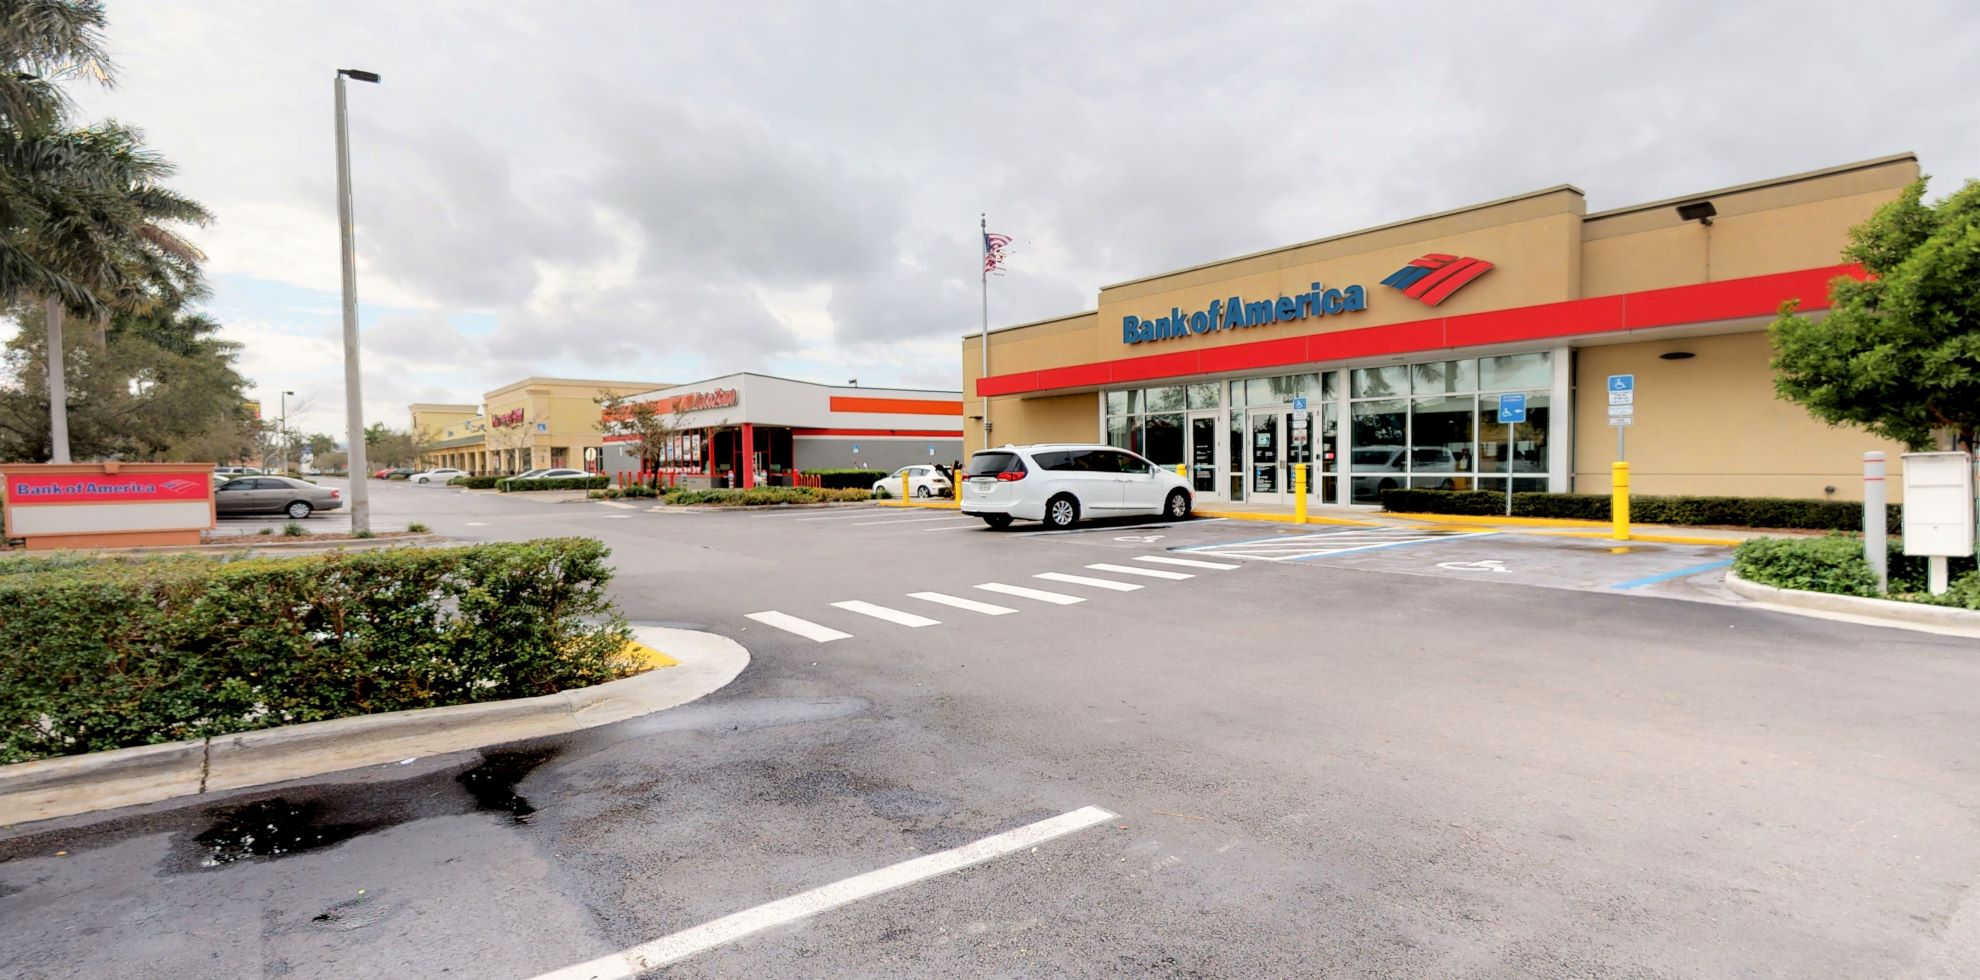 Bank of America financial center with drive-thru ATM | 33450 S Dixie Hwy, Florida City, FL 33034